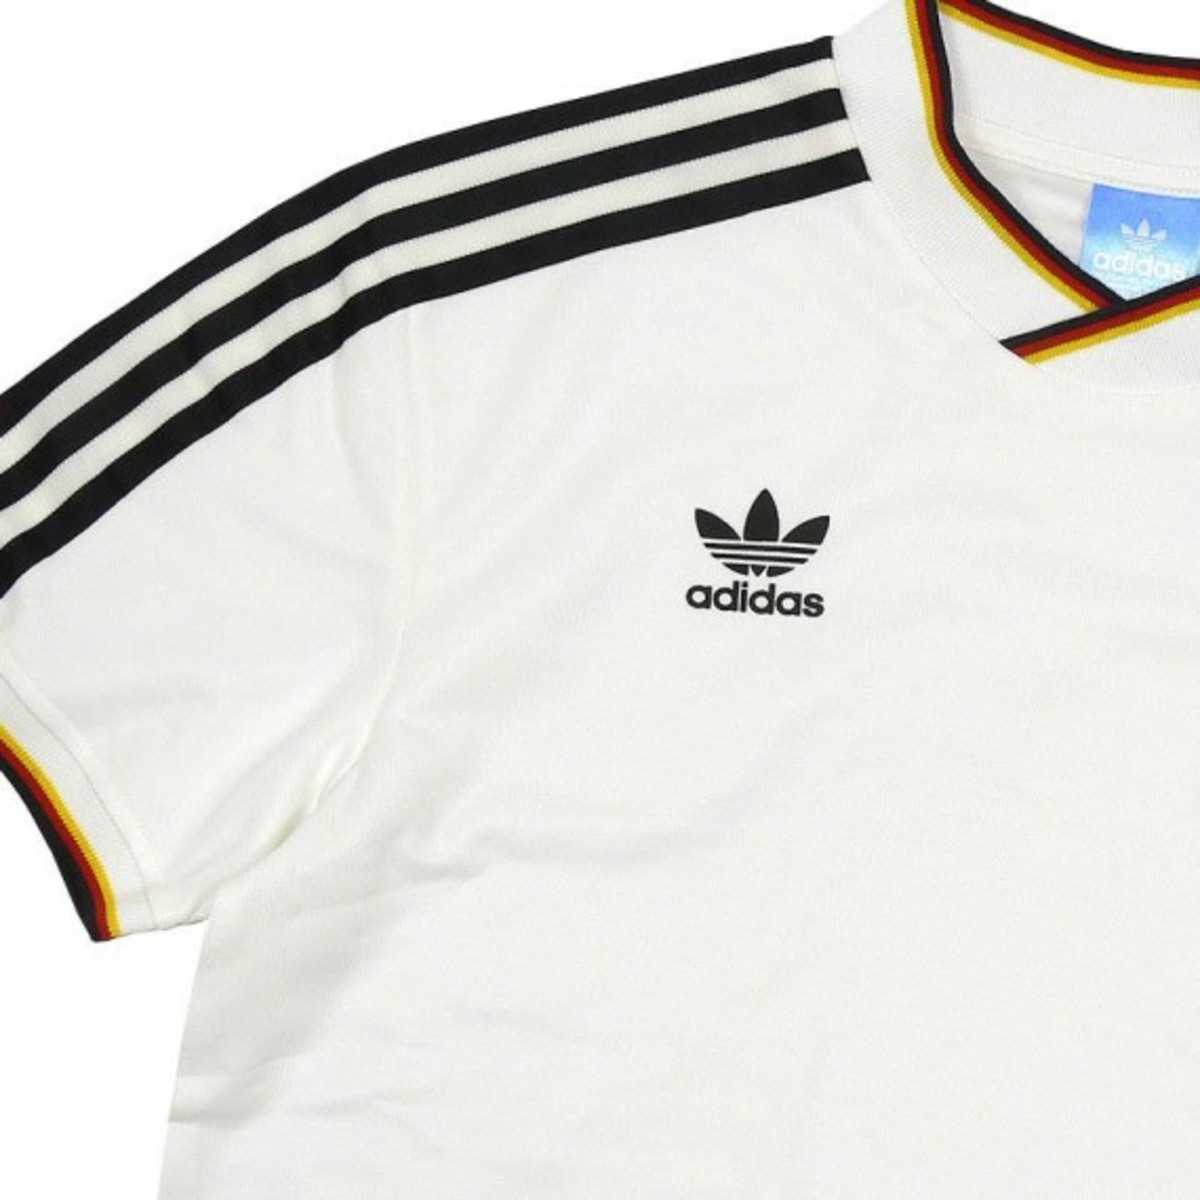 adidas-world-cup-celebration-pack-germany-08